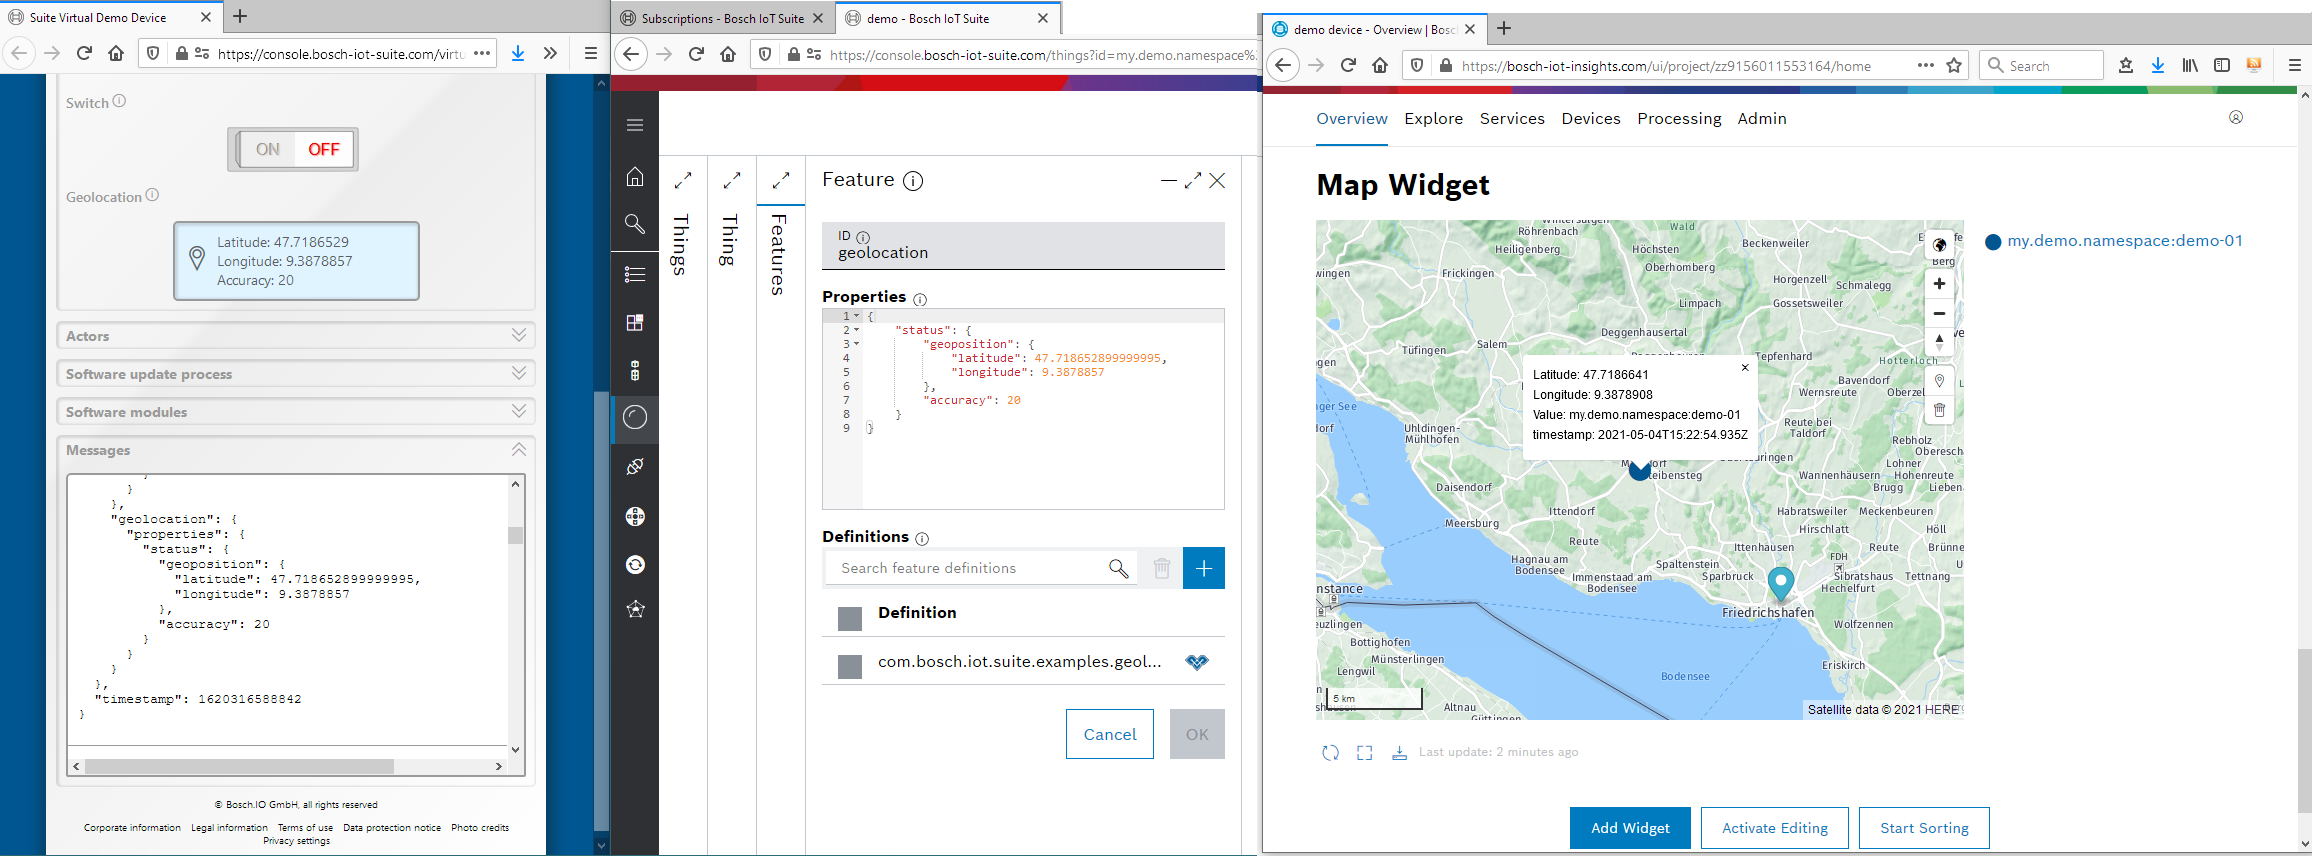 images/confluence/download/attachments/1717537320/geolocation-device-console-insights.png